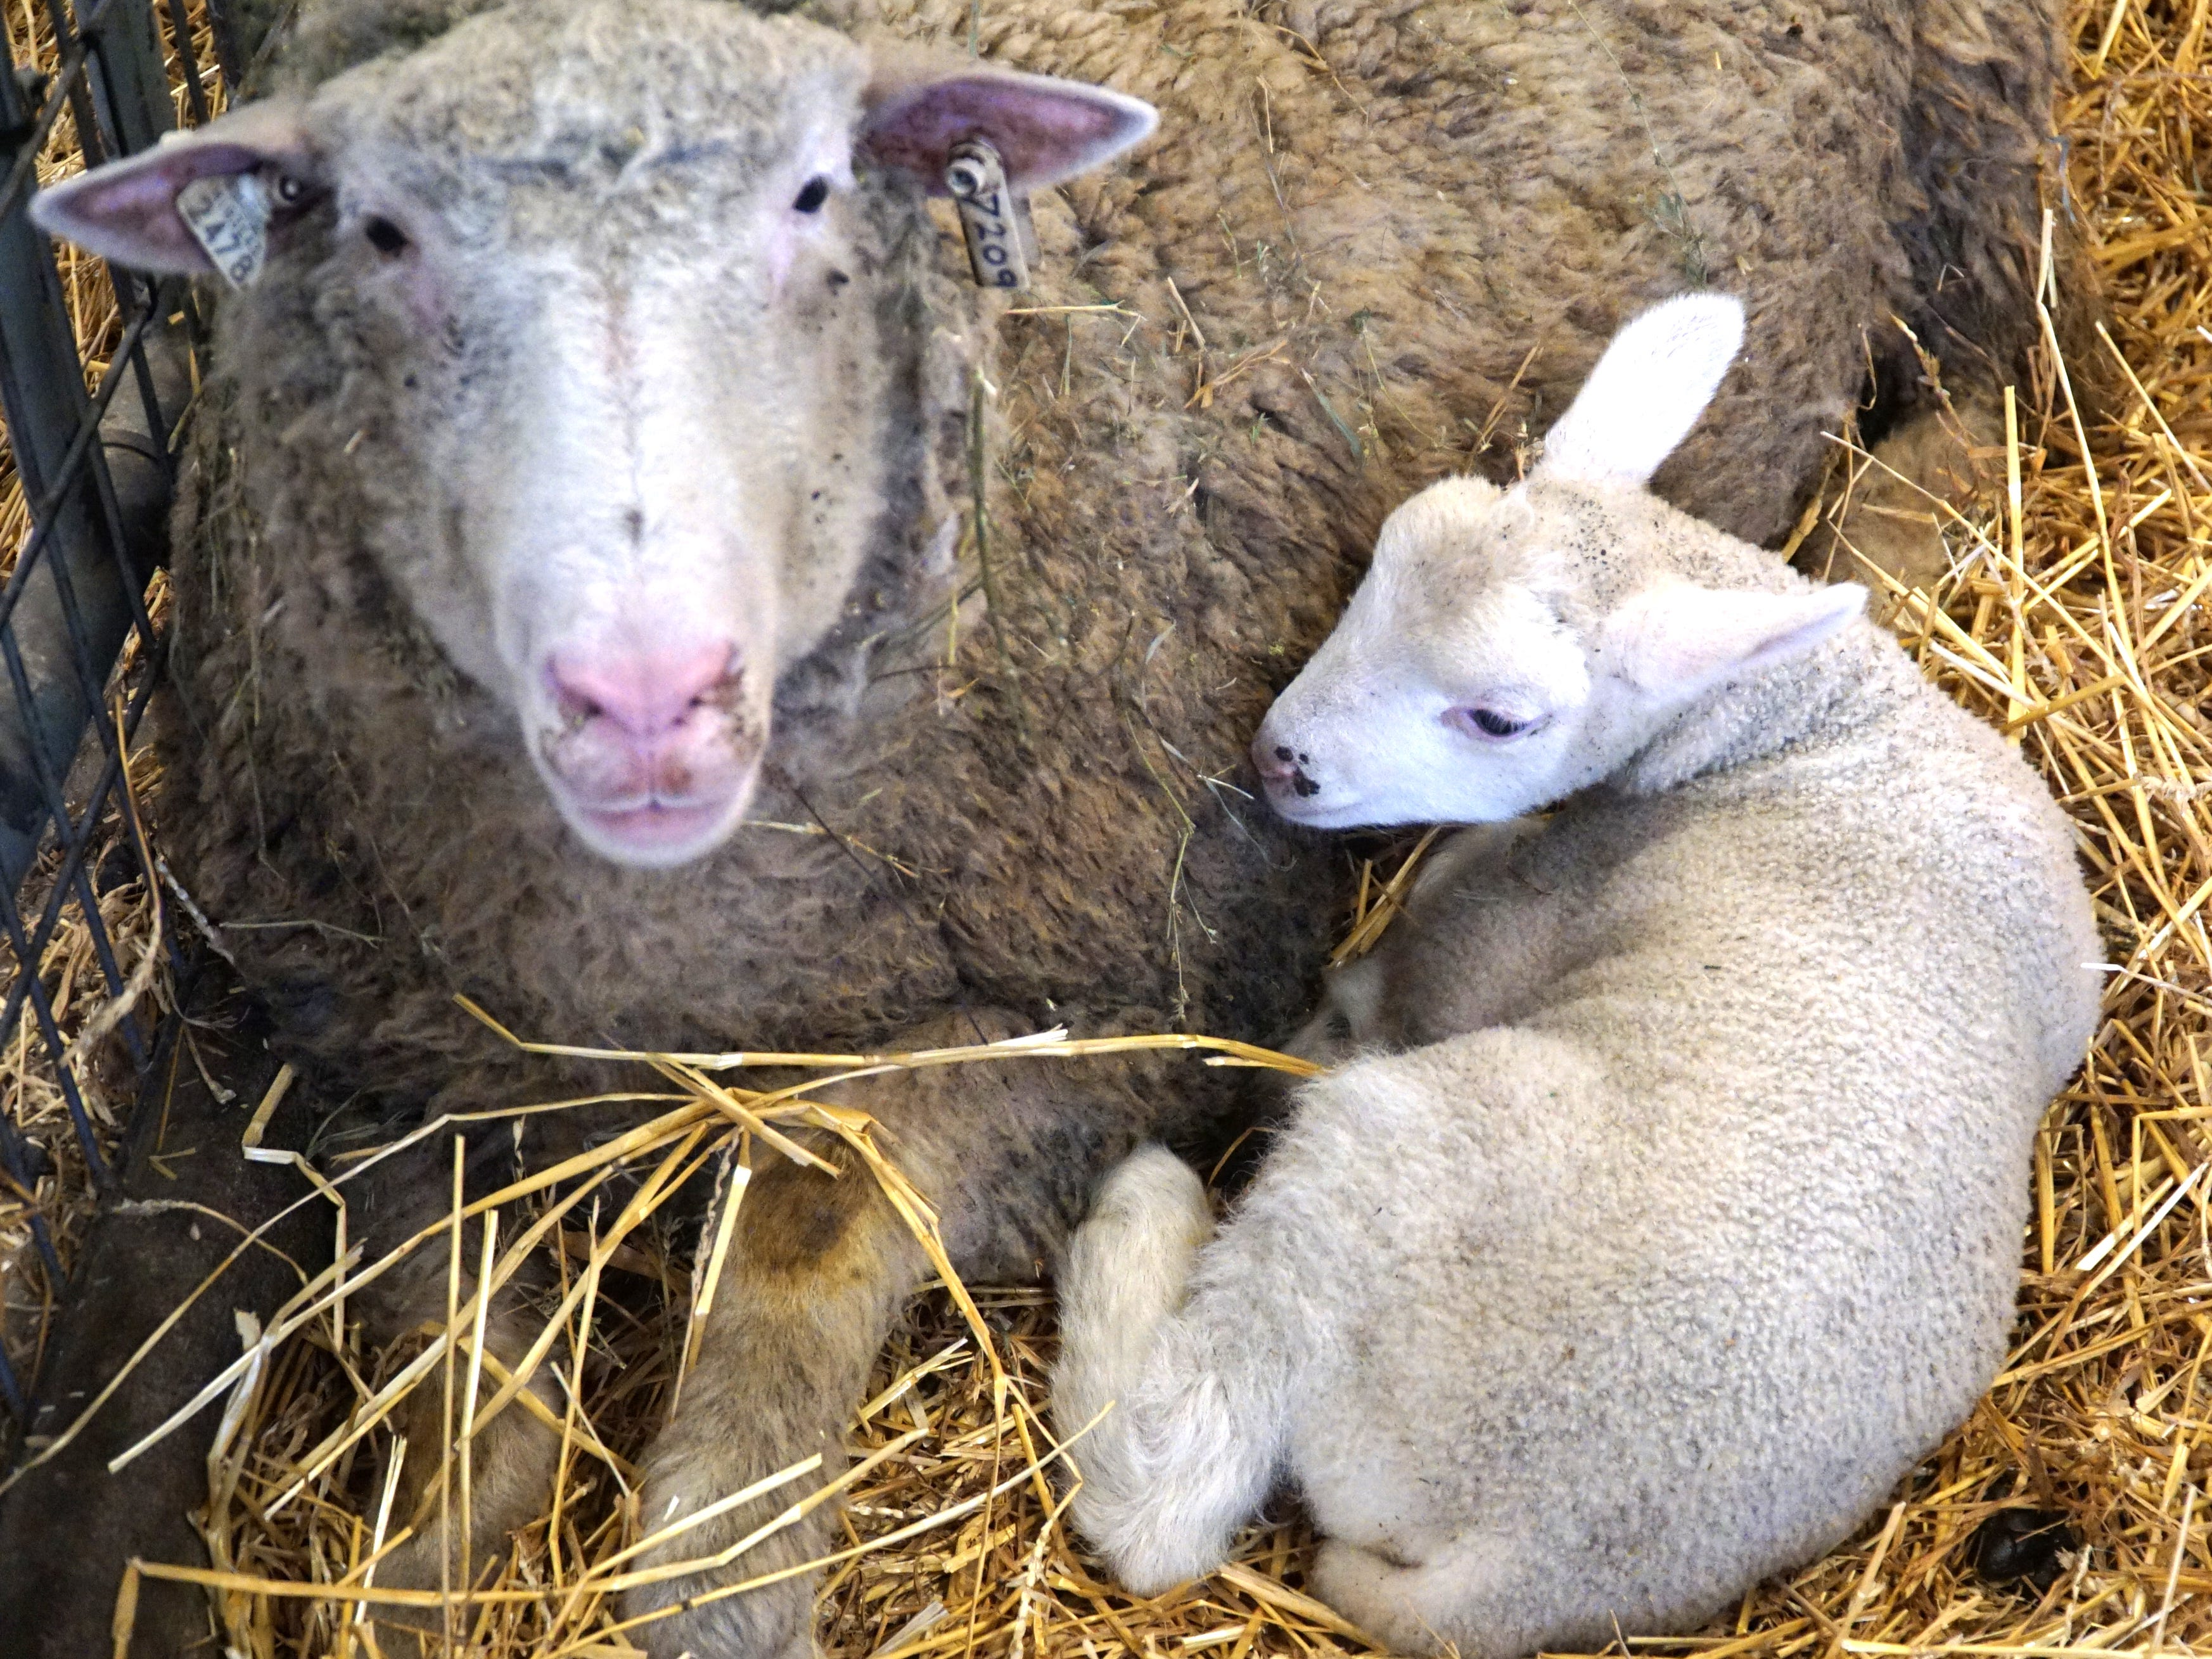 A young lamb snuggles up to its mom on March 20 at Kensington.